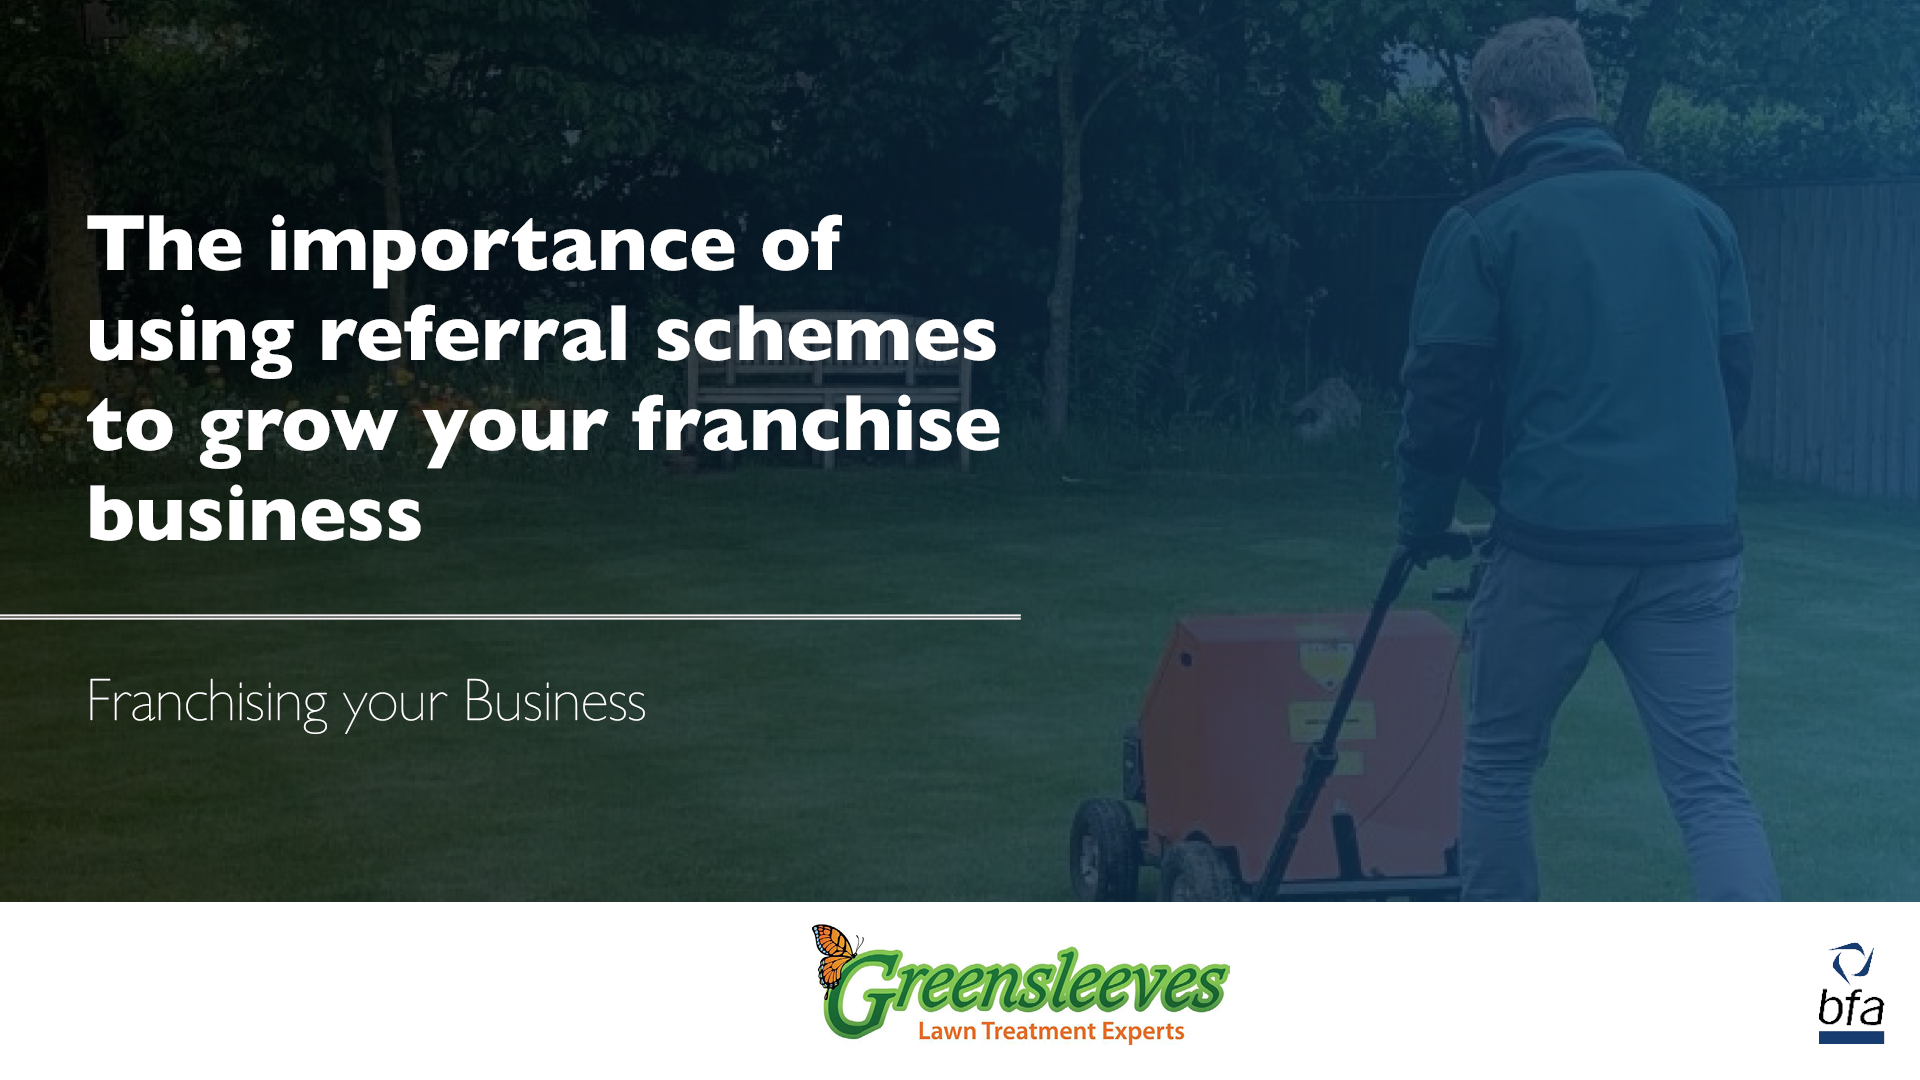 The importance of using referral schemes to grow your franchise business